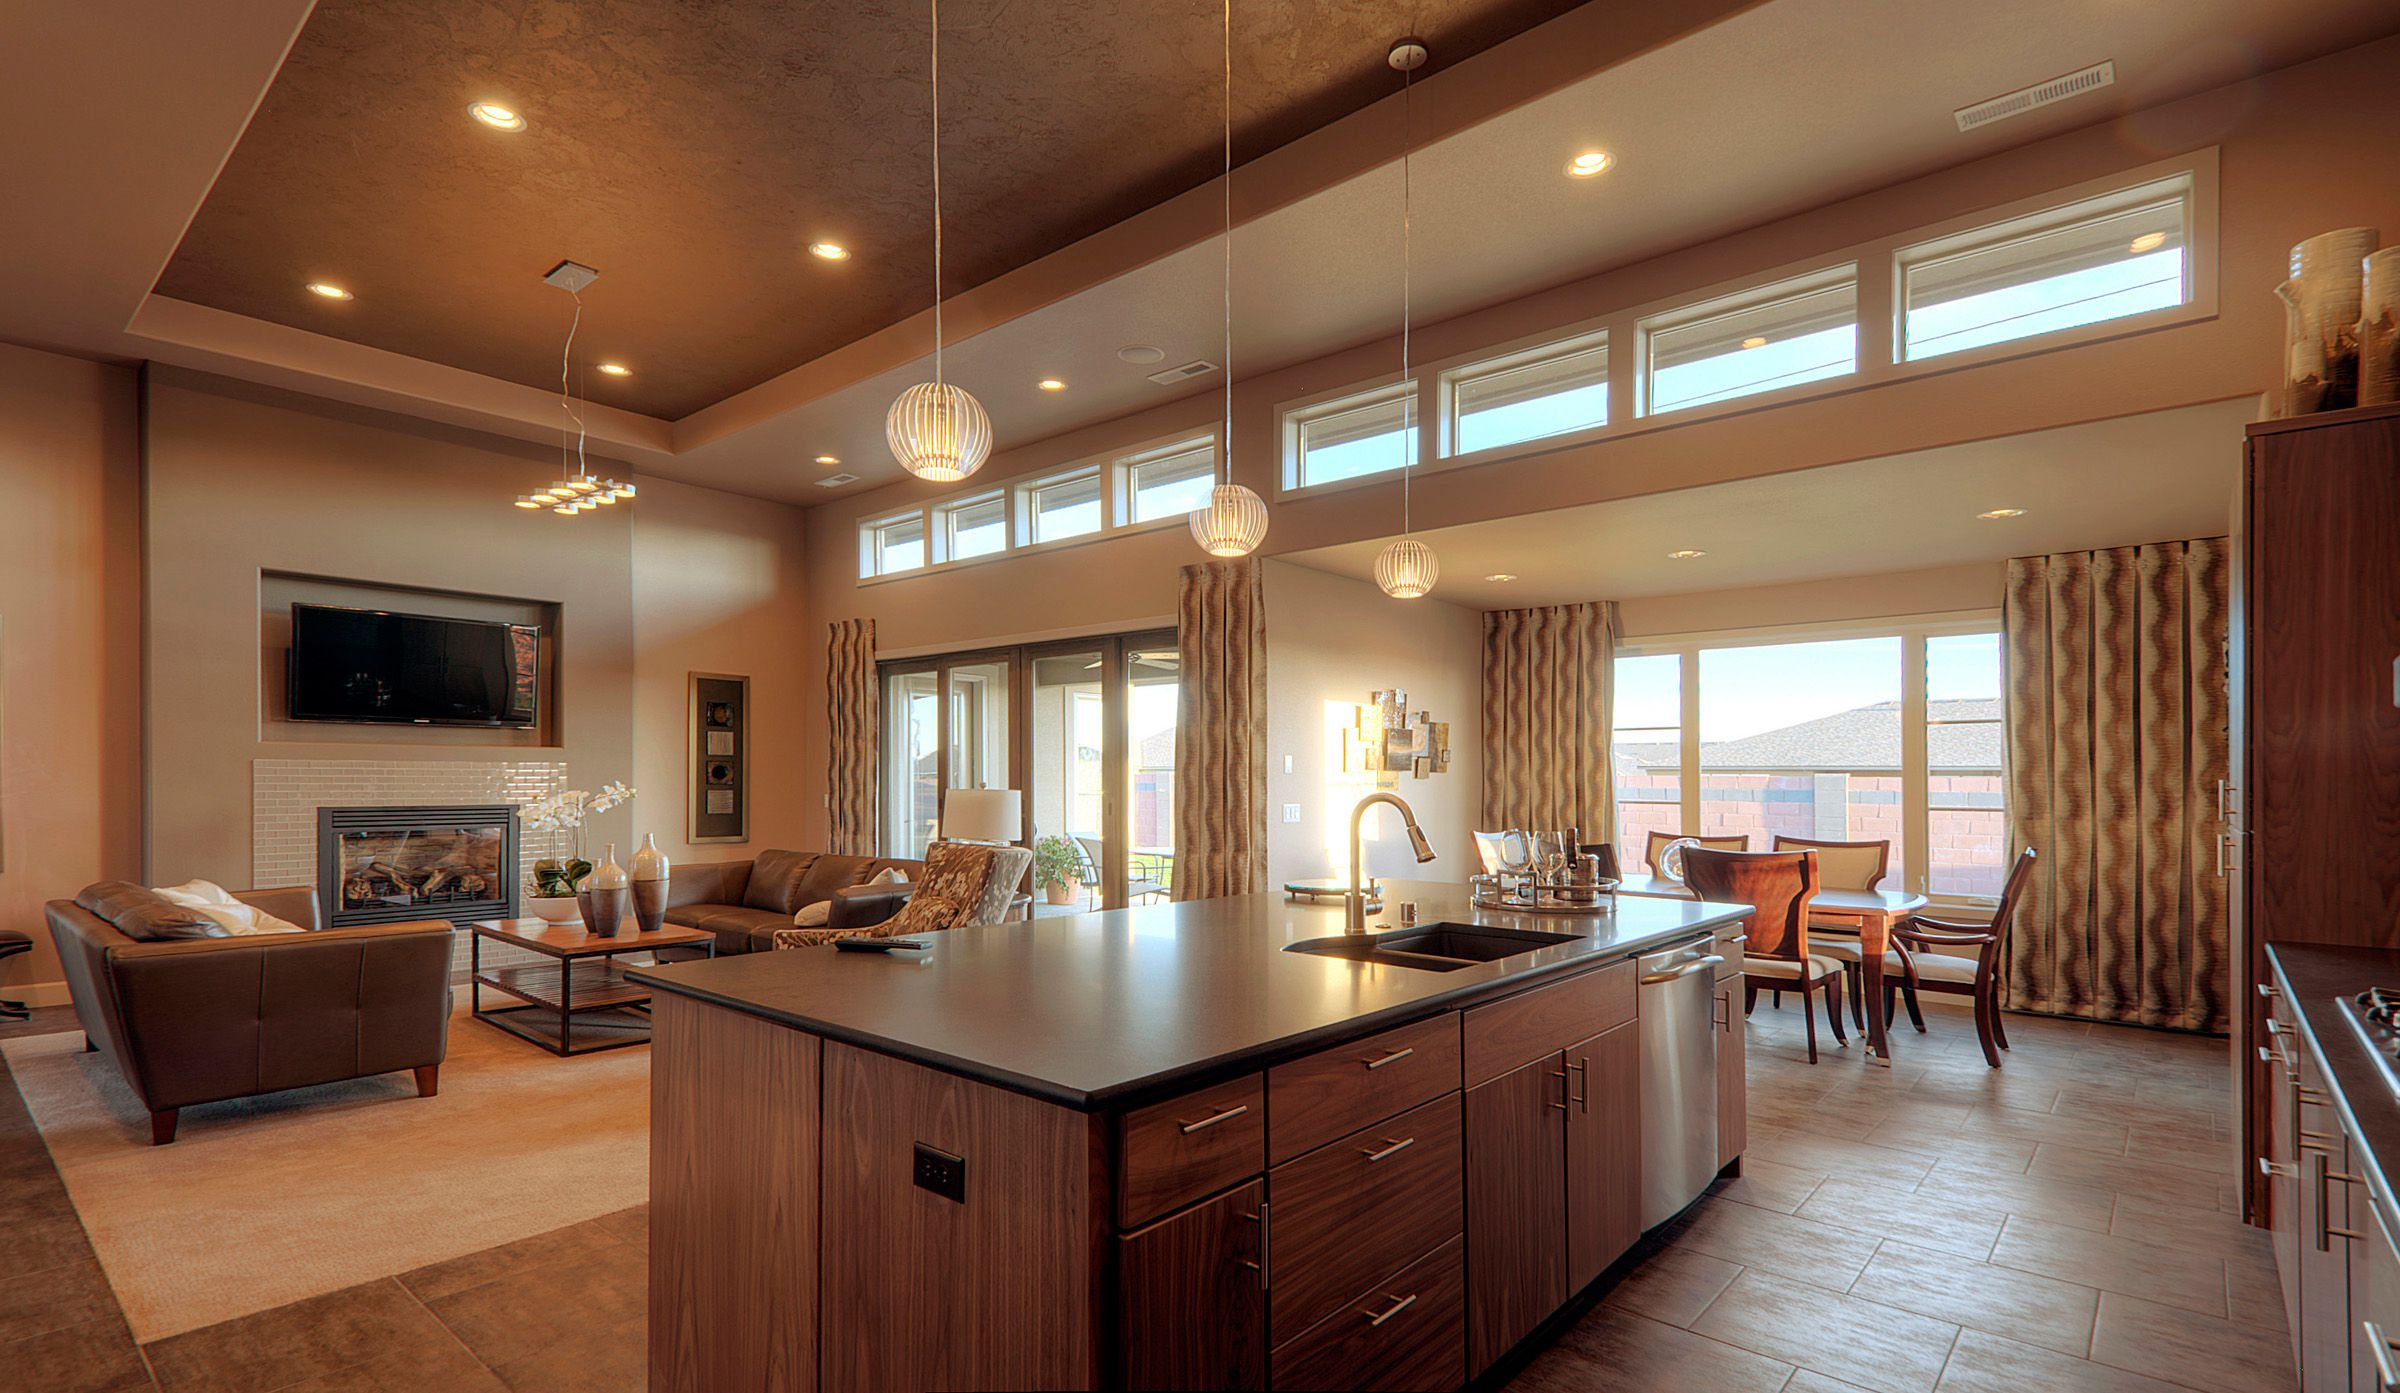 Add Enchanting Ceiling Lamps For Wonderful Open Floor Plans With Oak  Kitchen Island And Fluffy Brown